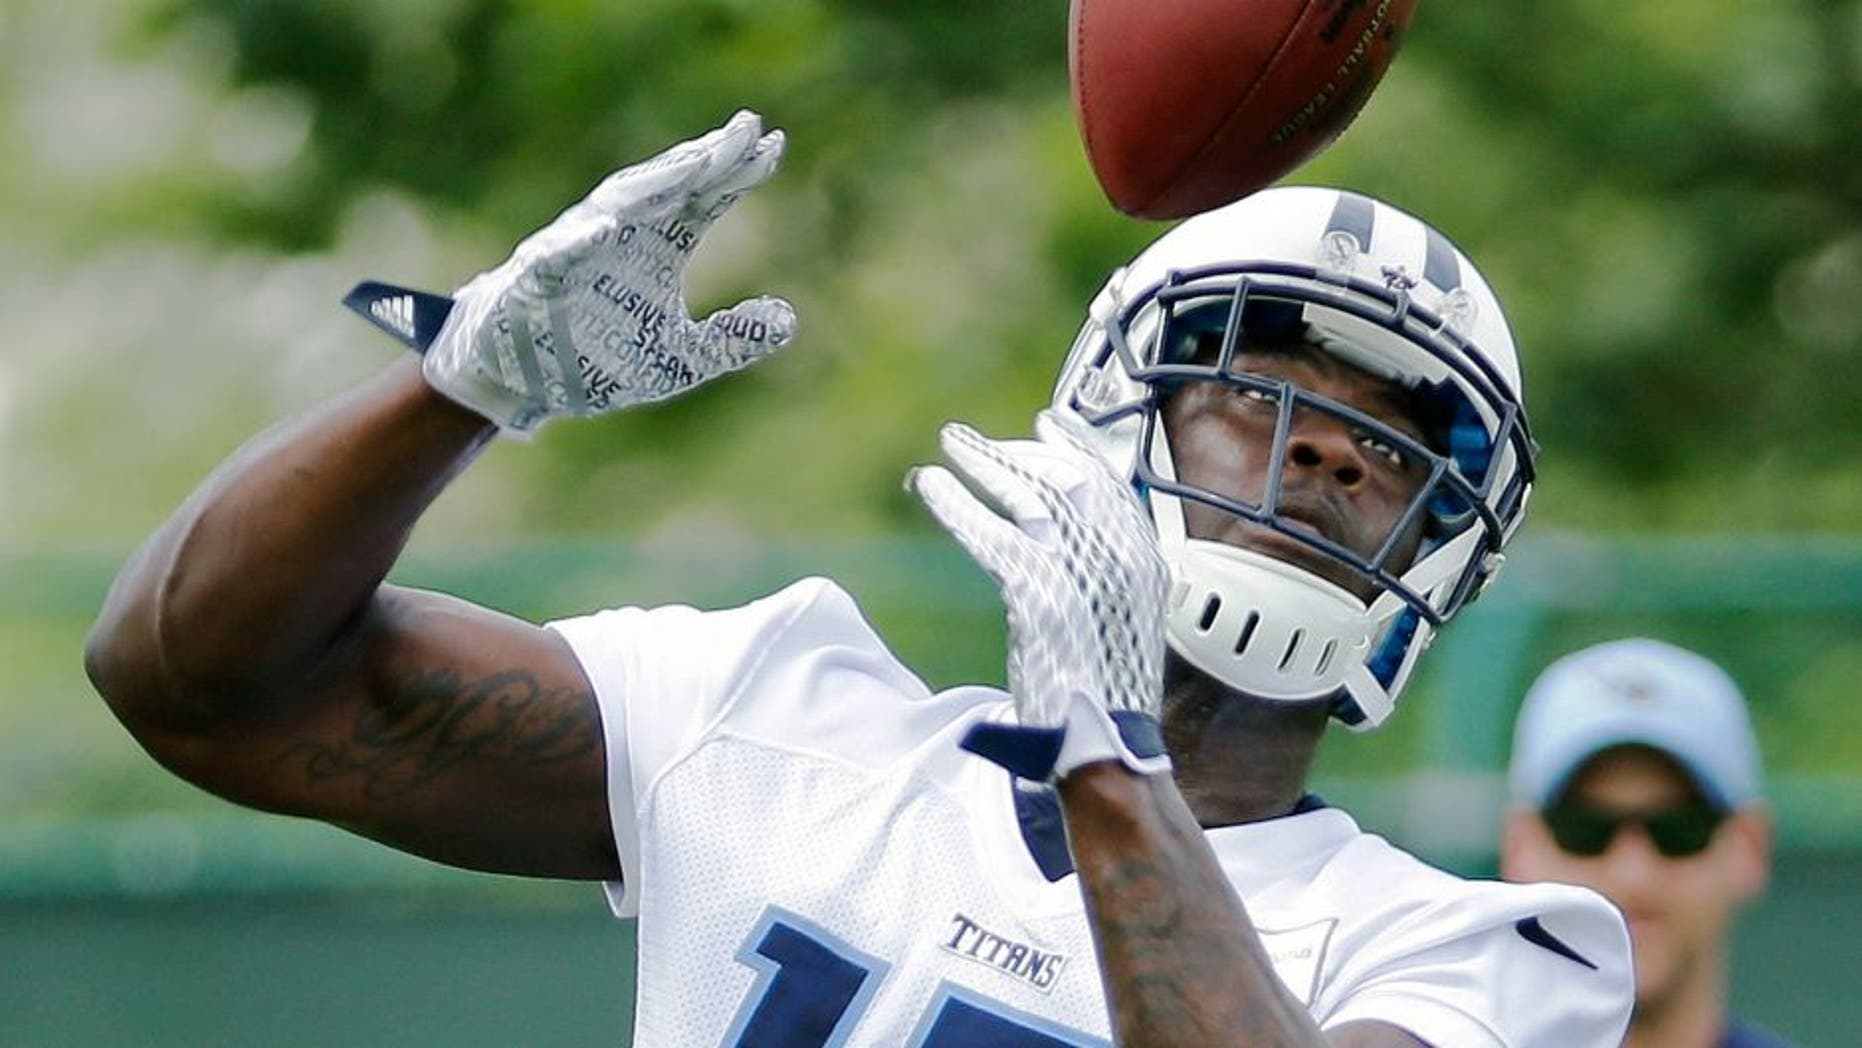 Tennessee Titans wide receiver Dorial Green-Beckham (17) catches a pass during NFL football minicamp on Thursday, June 18, 2015, in Nashville, Tenn. The Titans wrap up their three-day mandatory minicamp Thursday. (AP Photo/Mark Humphrey)